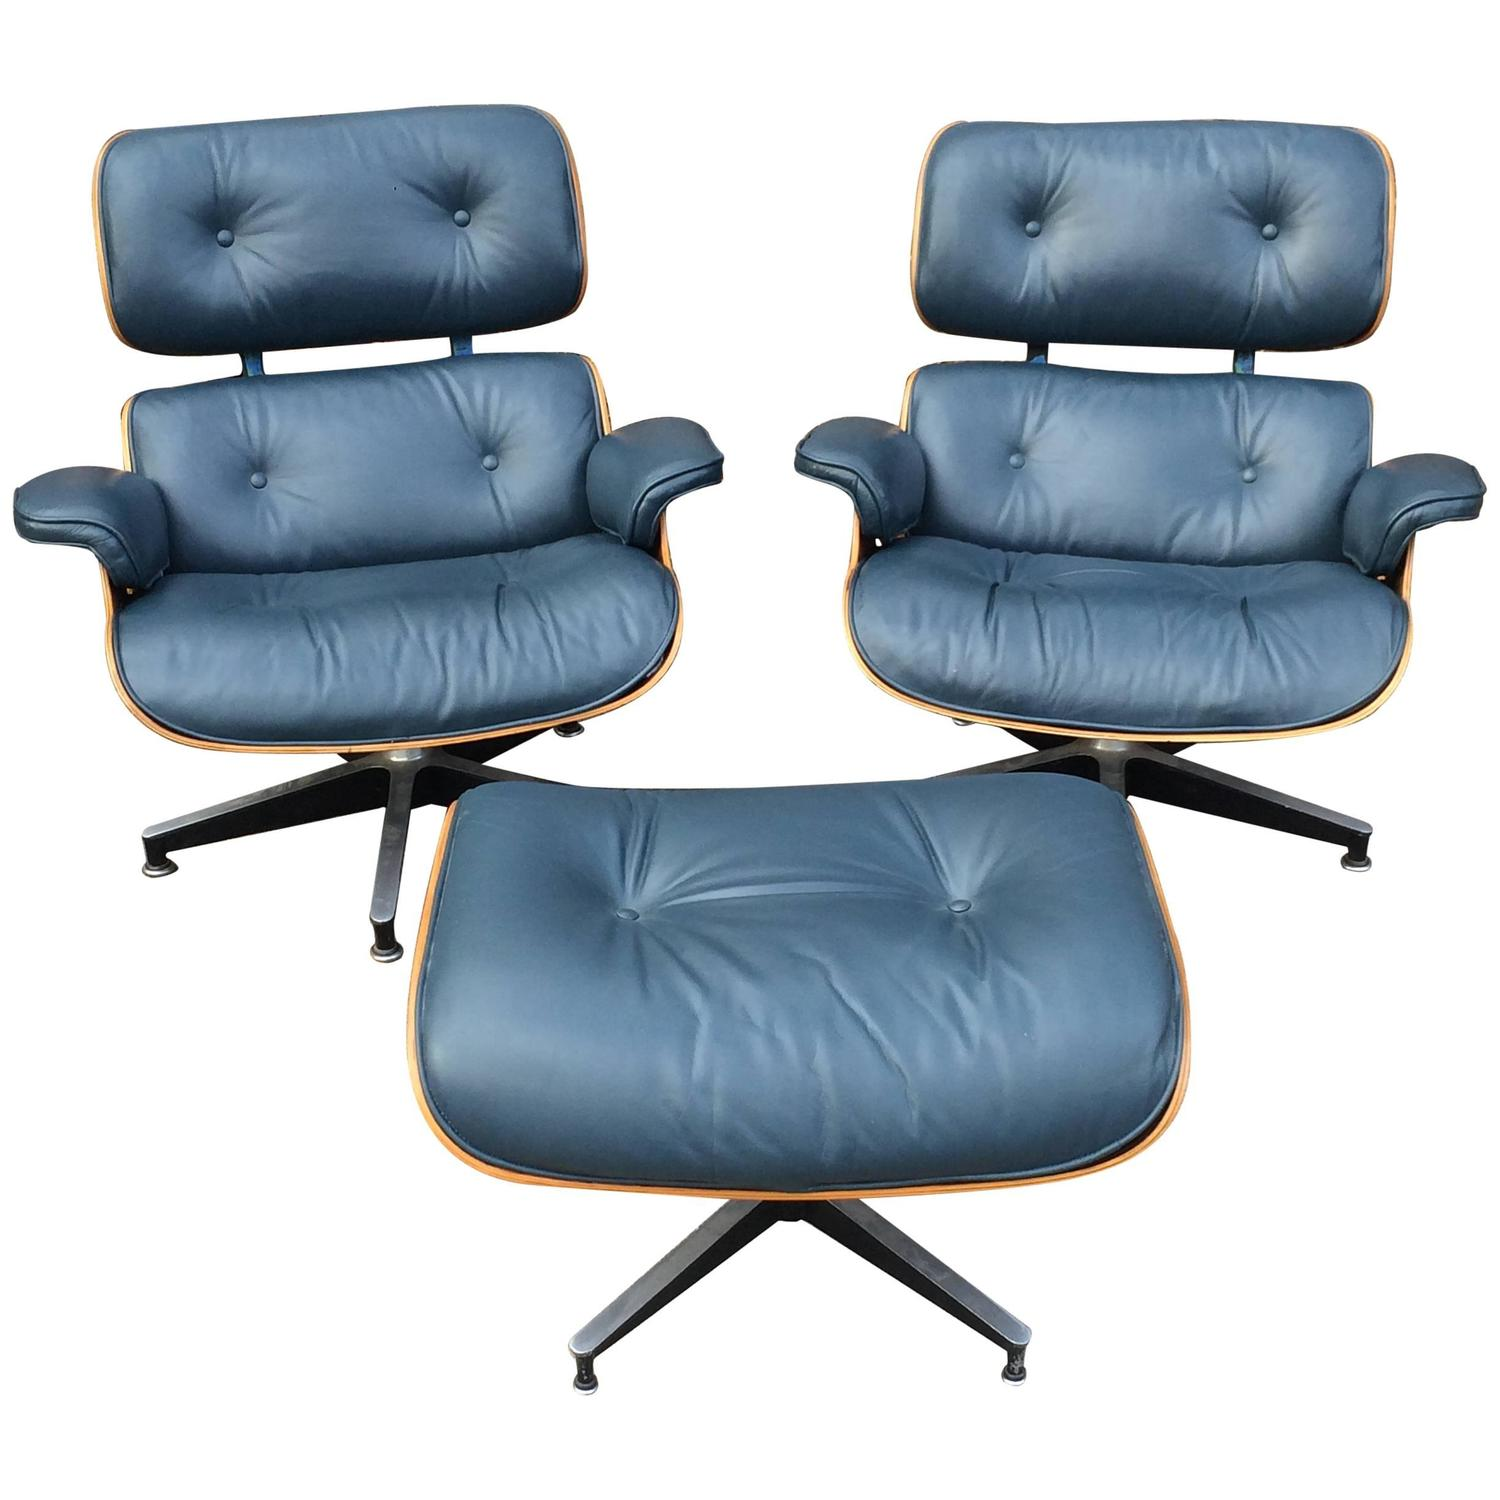 Rare Navy Blue Herman Miller Eames Lounge Chair Set For Sale At 1stdibs